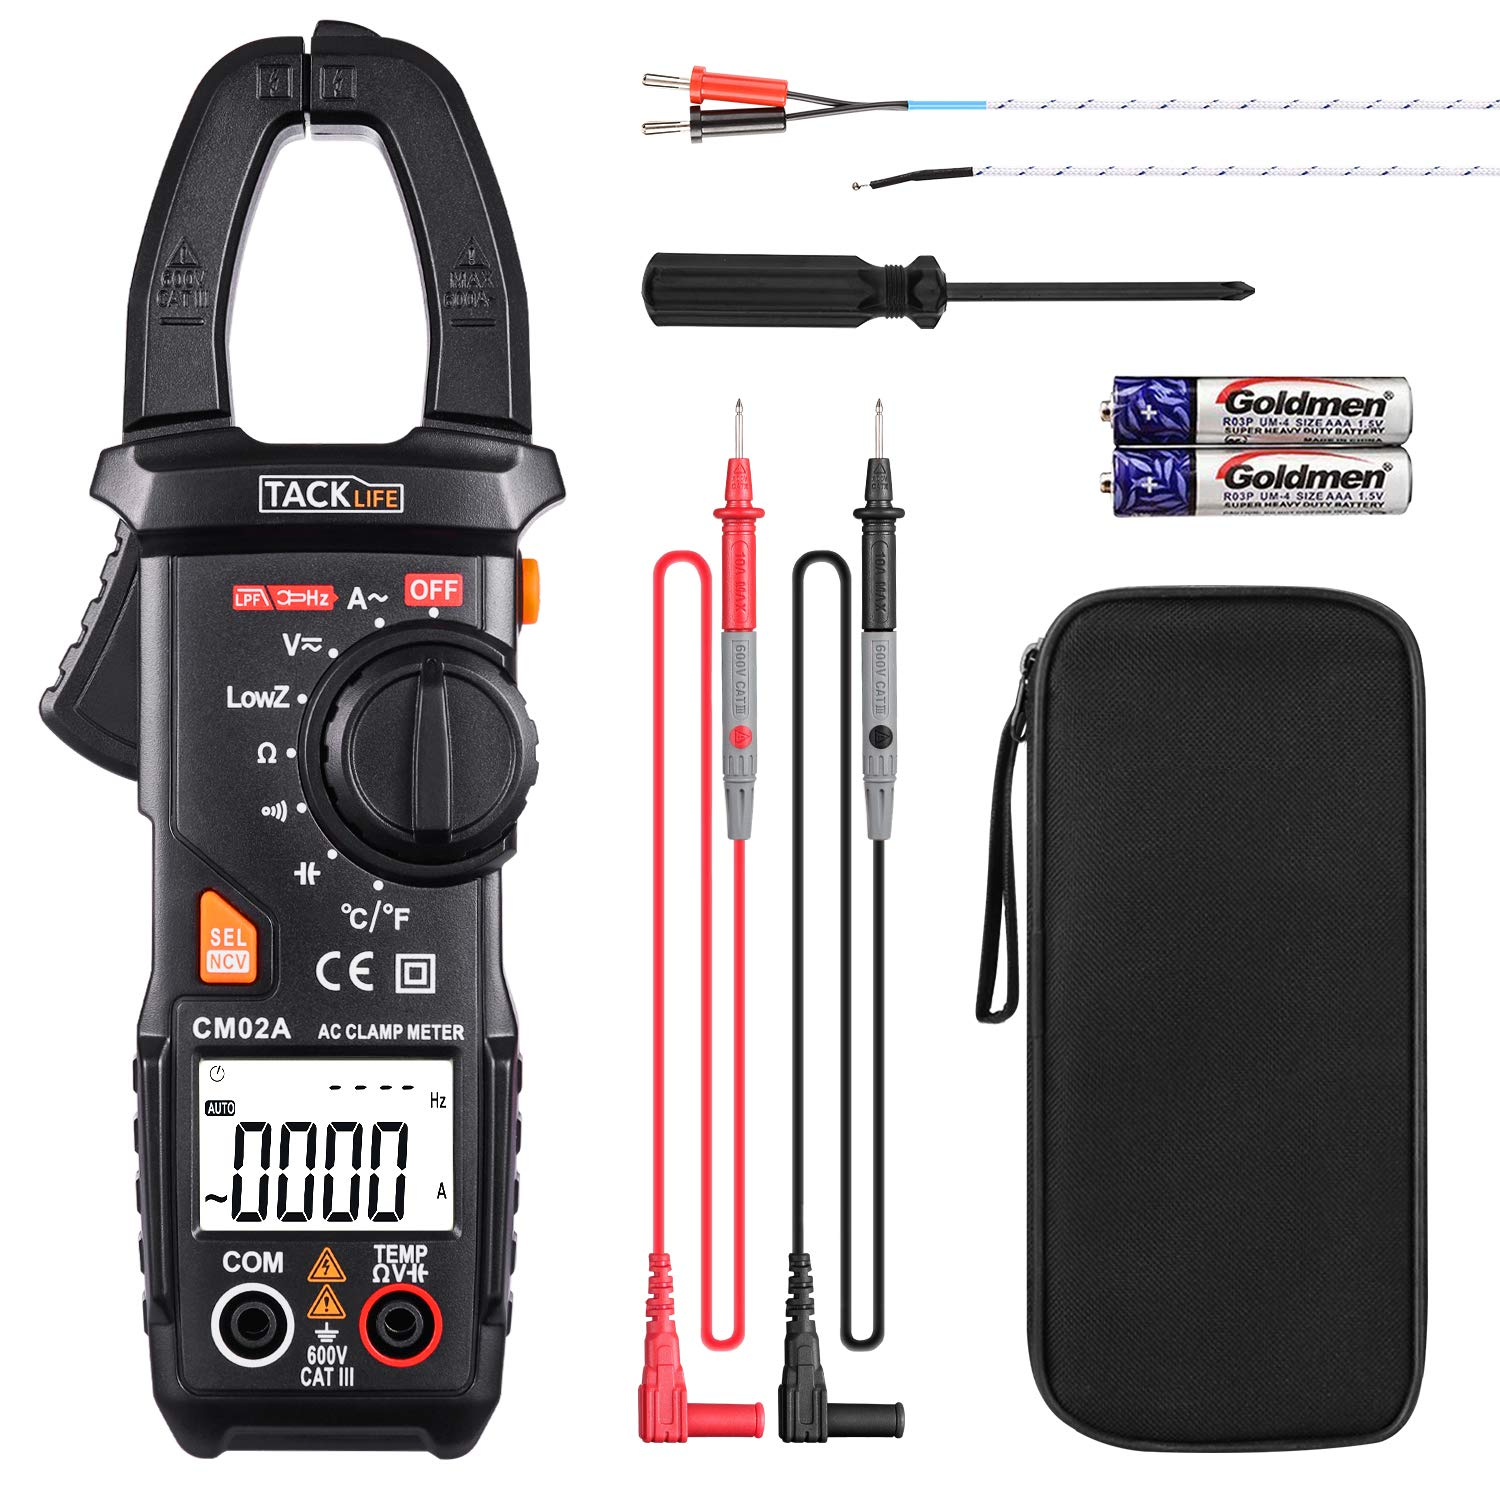 Digital Clamp Meter Multimeter Auto-Ranging Tacklife CM02A 600 Amp TRMS 6000 Counts NCV with AC Current AC/DC Voltage Test Resistance Continuity Capacitance Temperature Measure by TACKLIFE